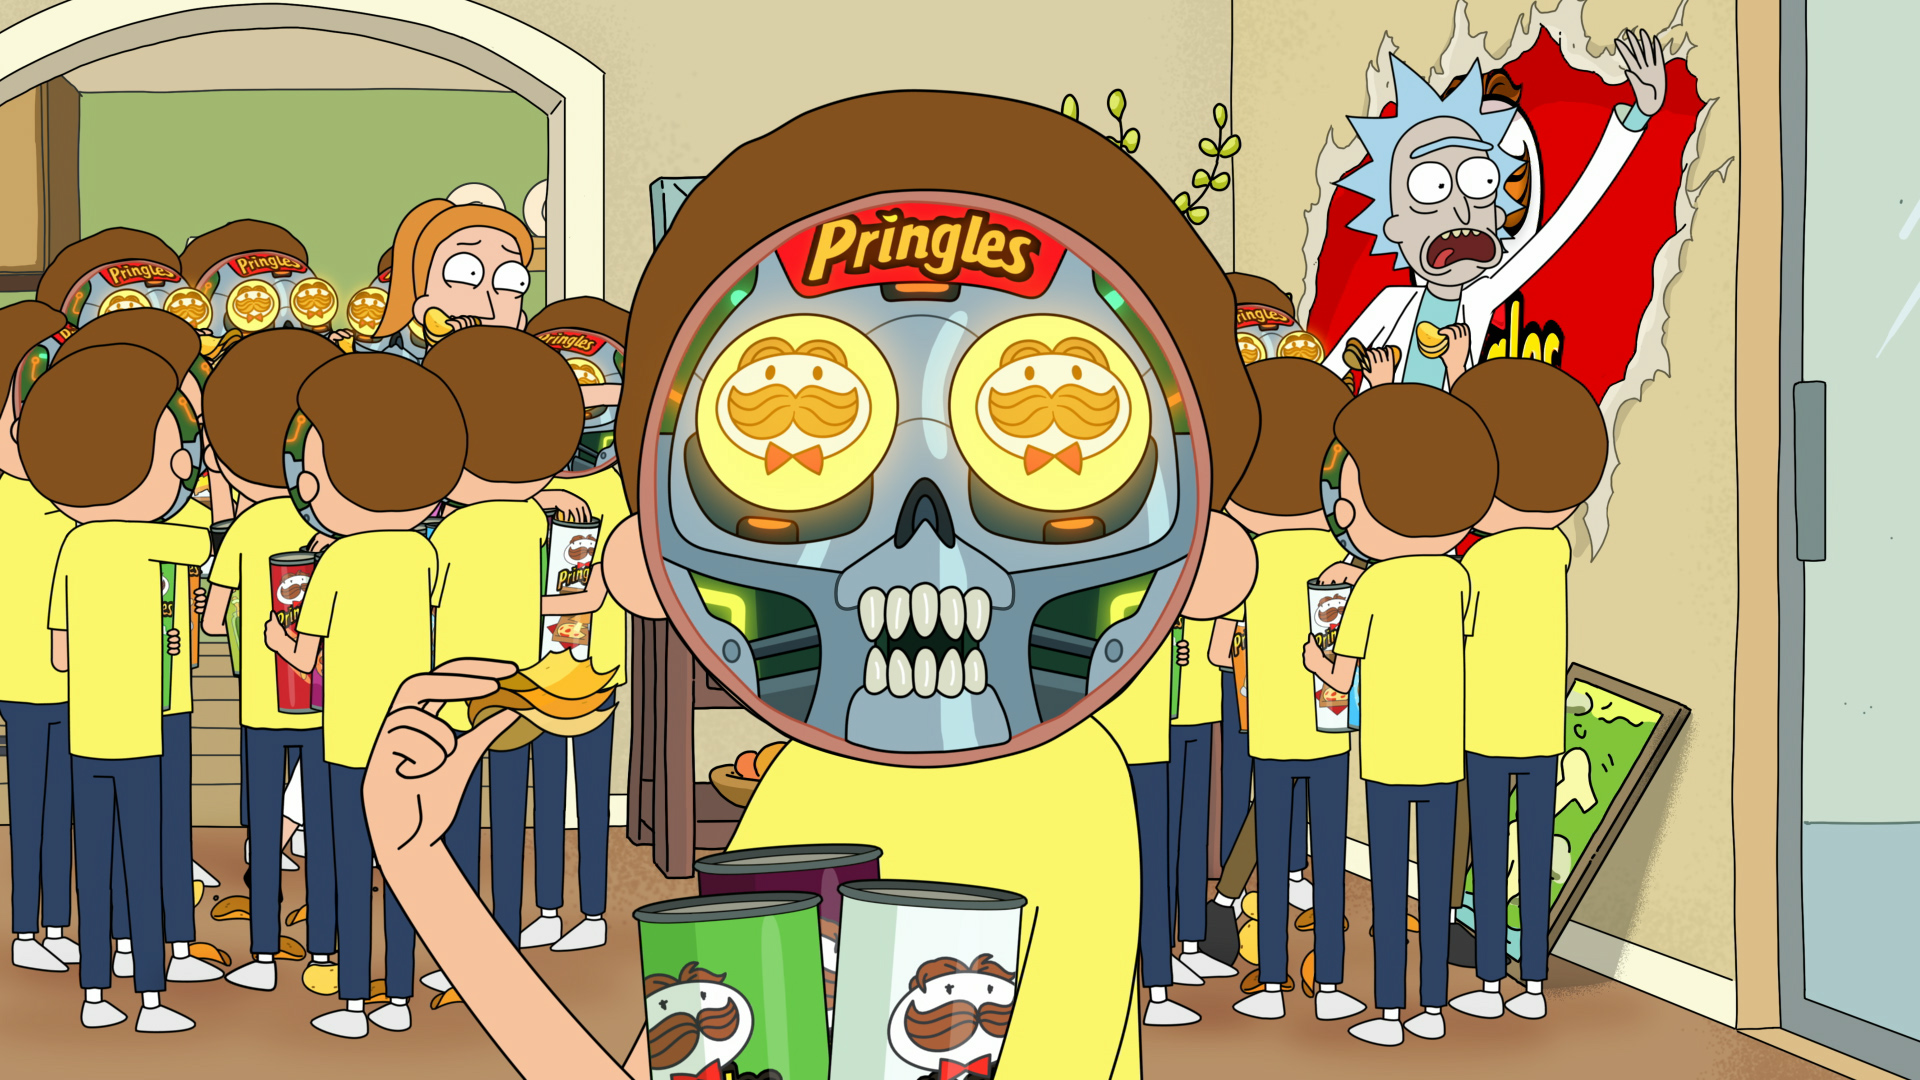 Adult Swim and Pringles Super Bowl Commercial